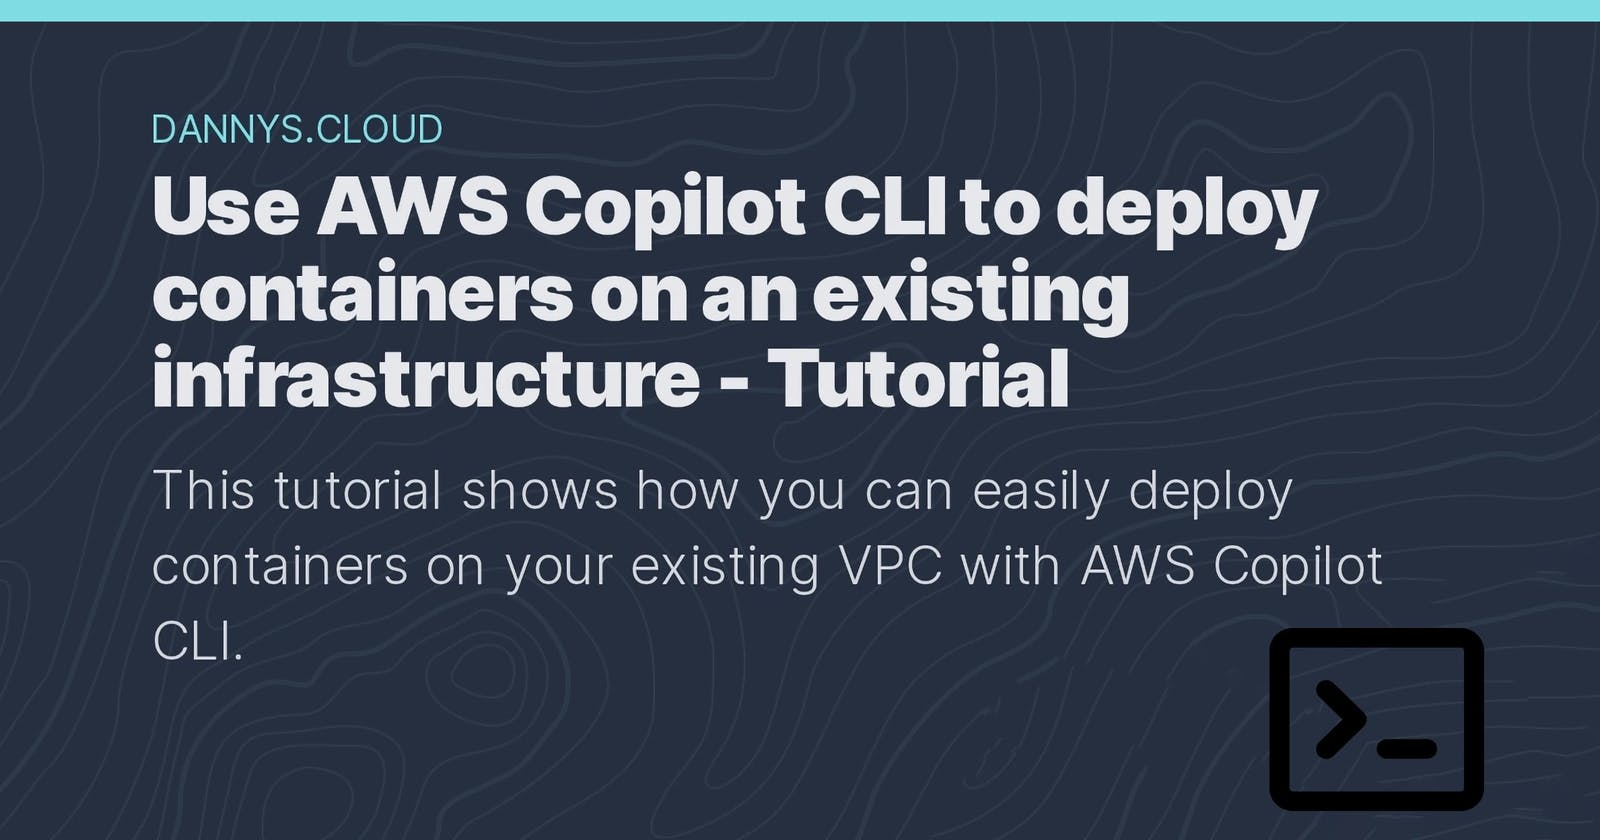 Use AWS Copilot CLI to deploy containers on an existing infrastructure - Tutorial